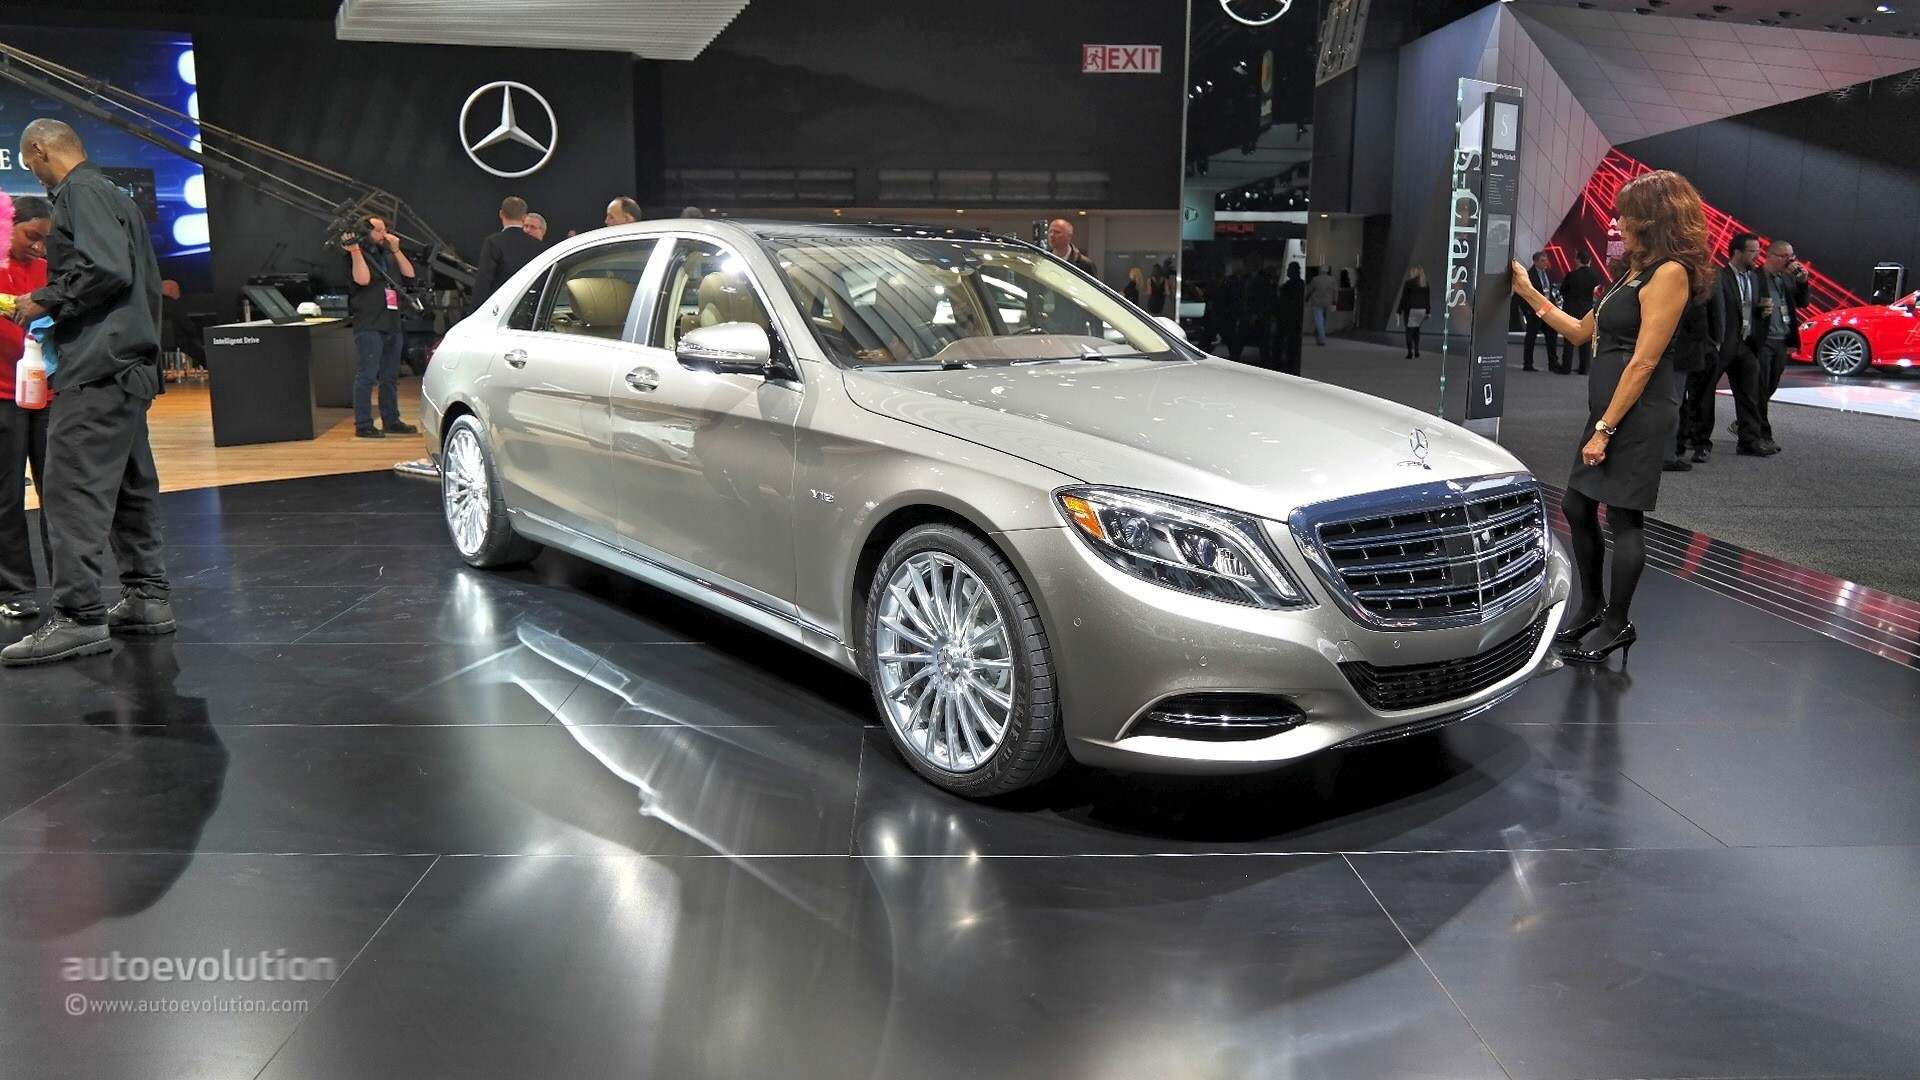 2016 MercedesMaybach S600 The Wolf of Wall Street in Detroit Live Photos  autoevolution